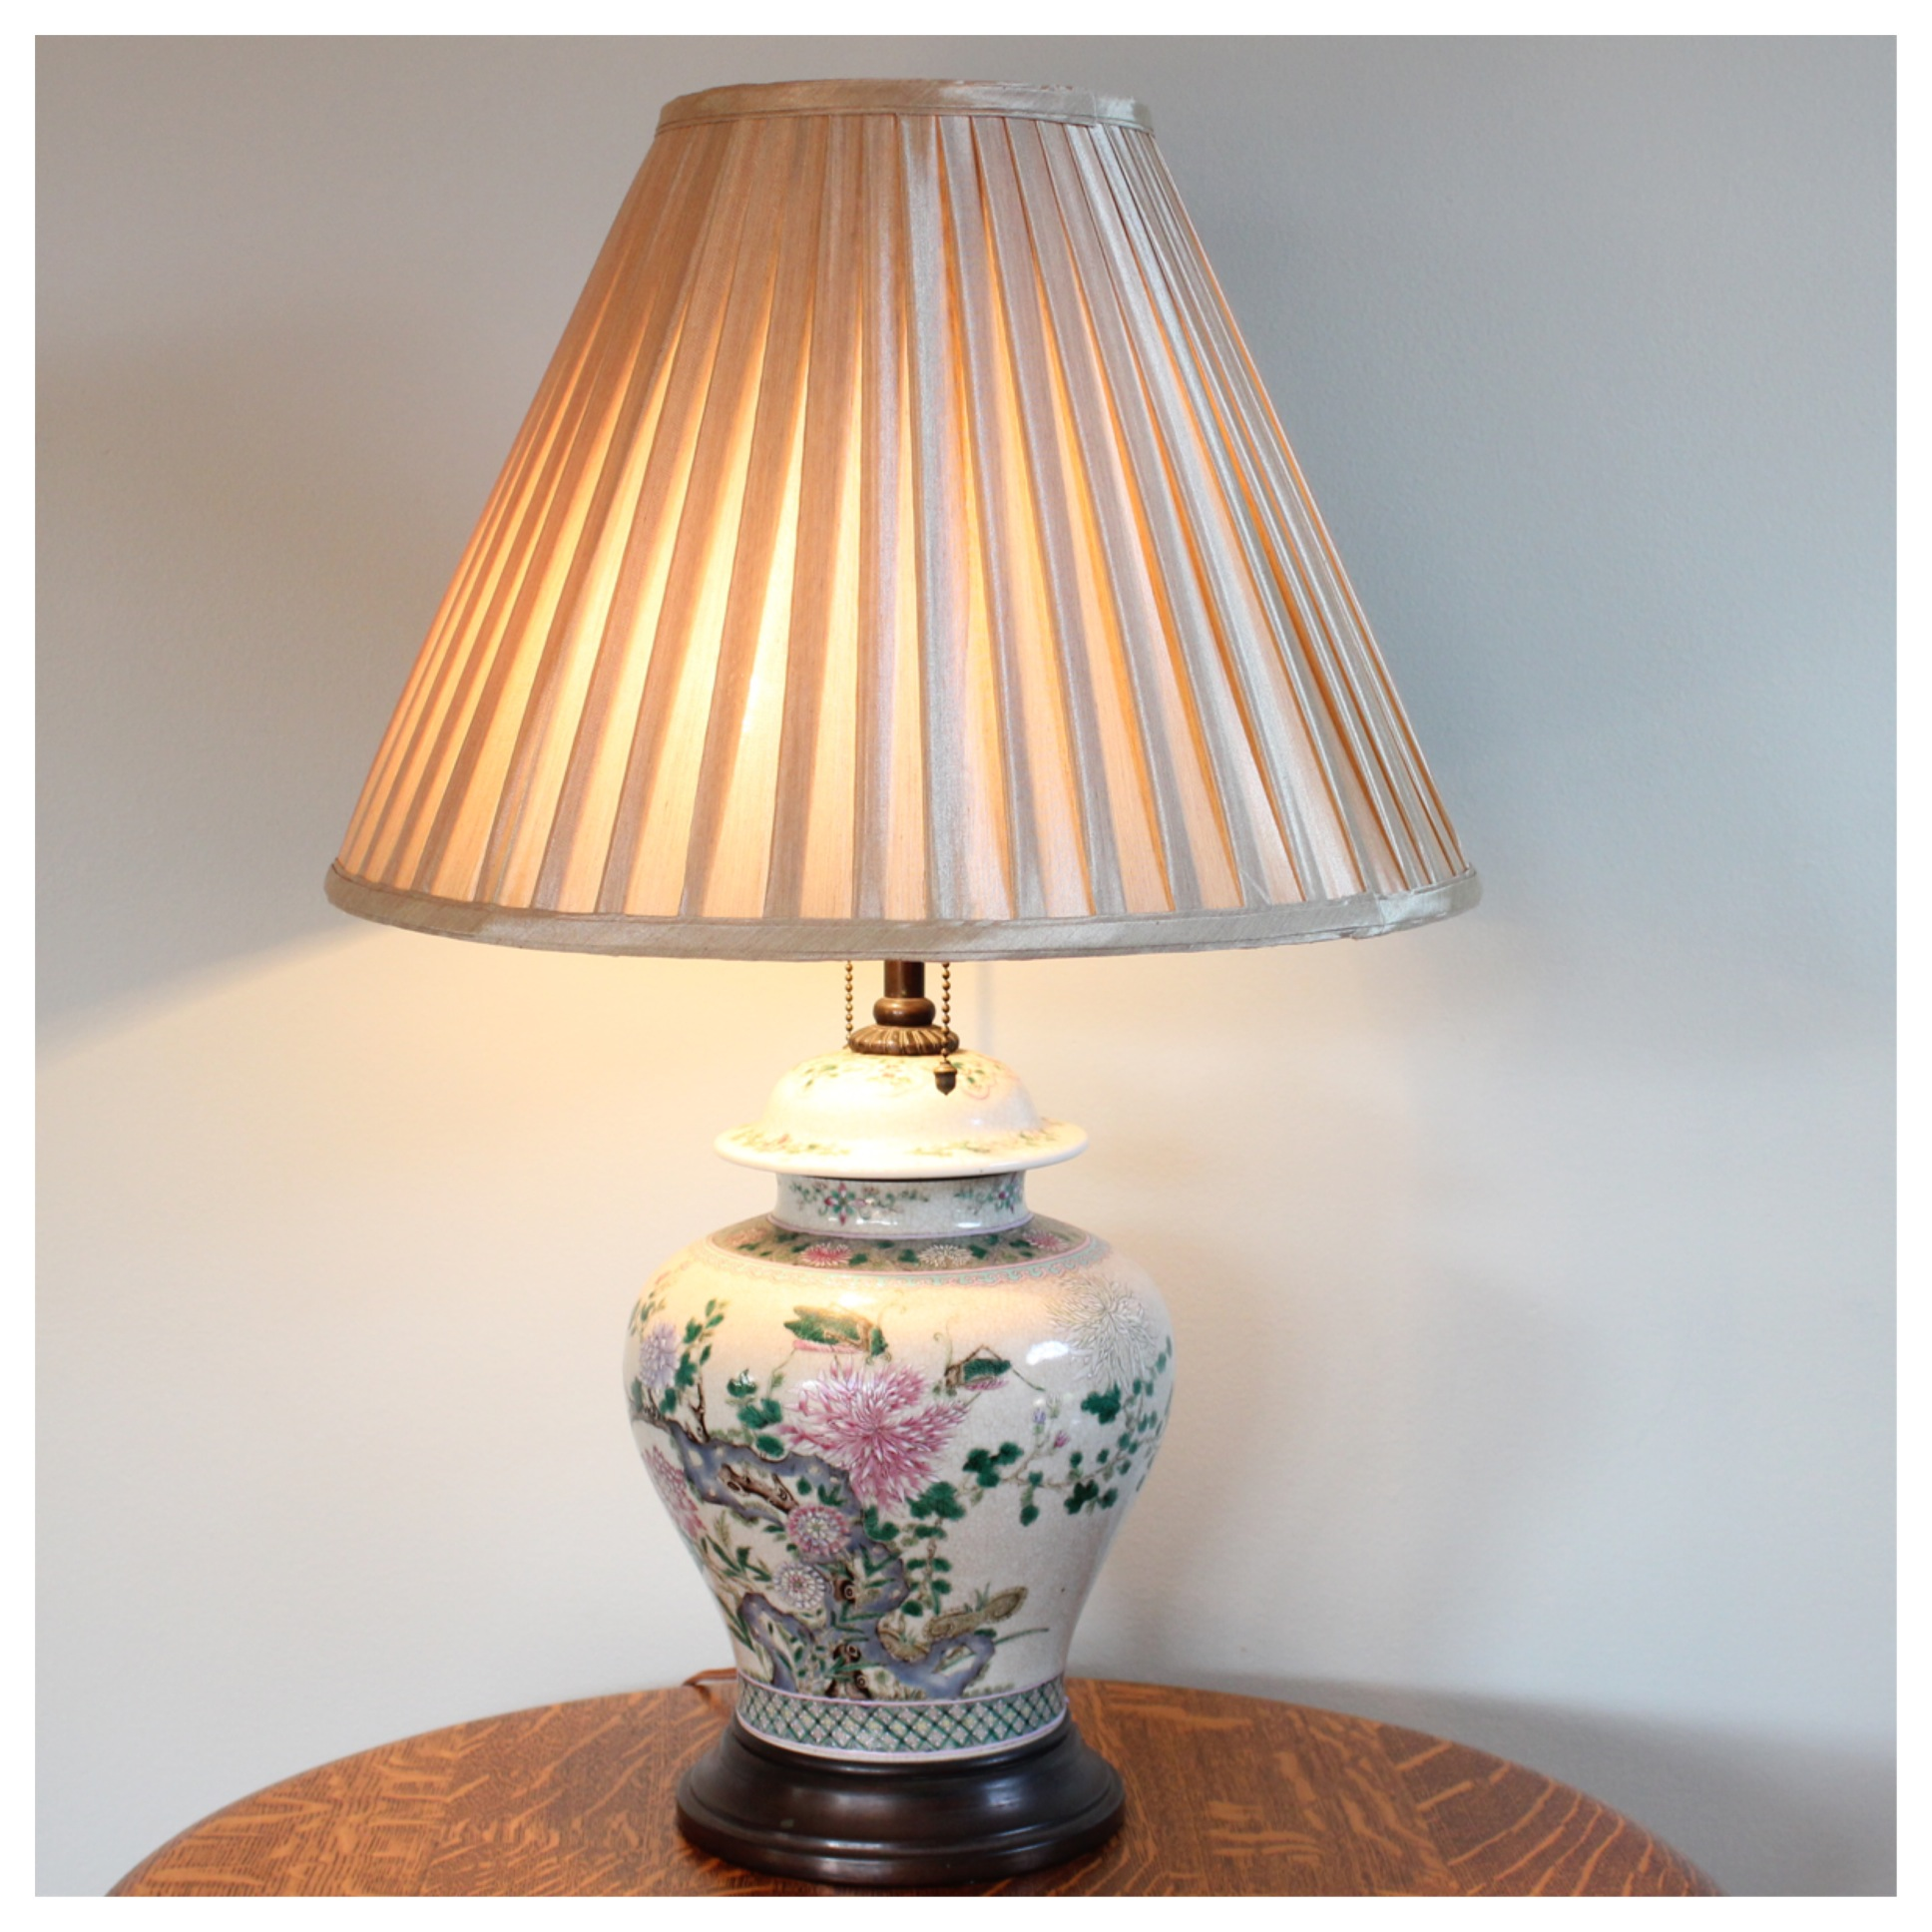 A7883 ginger jar table lamp bogart bremmer bradley antiques a7883 ginger jar table lamp geotapseo Gallery